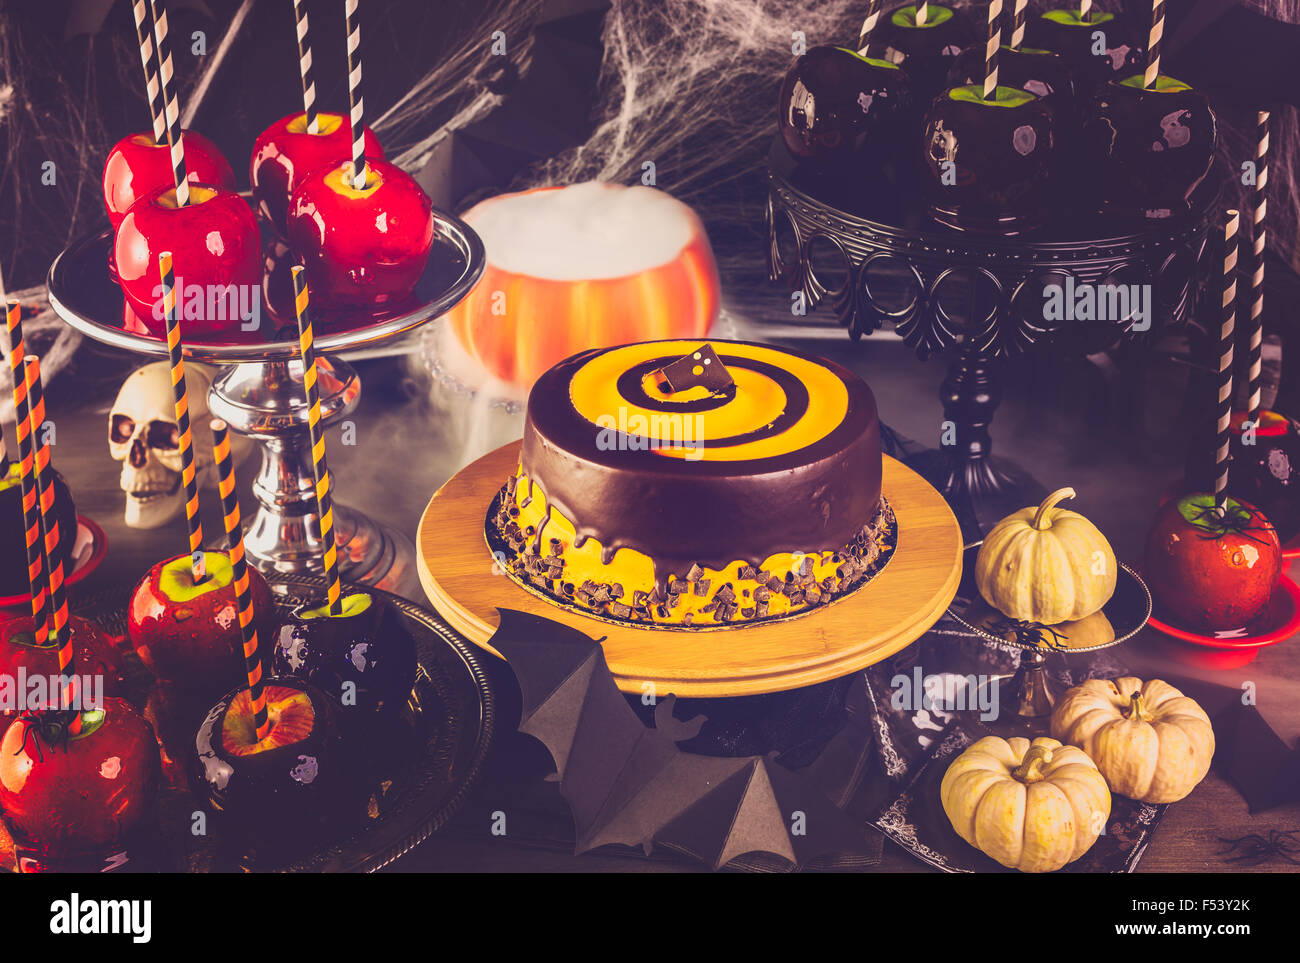 Table With Colored Candy Apples And Cake For Halloween Party Stock